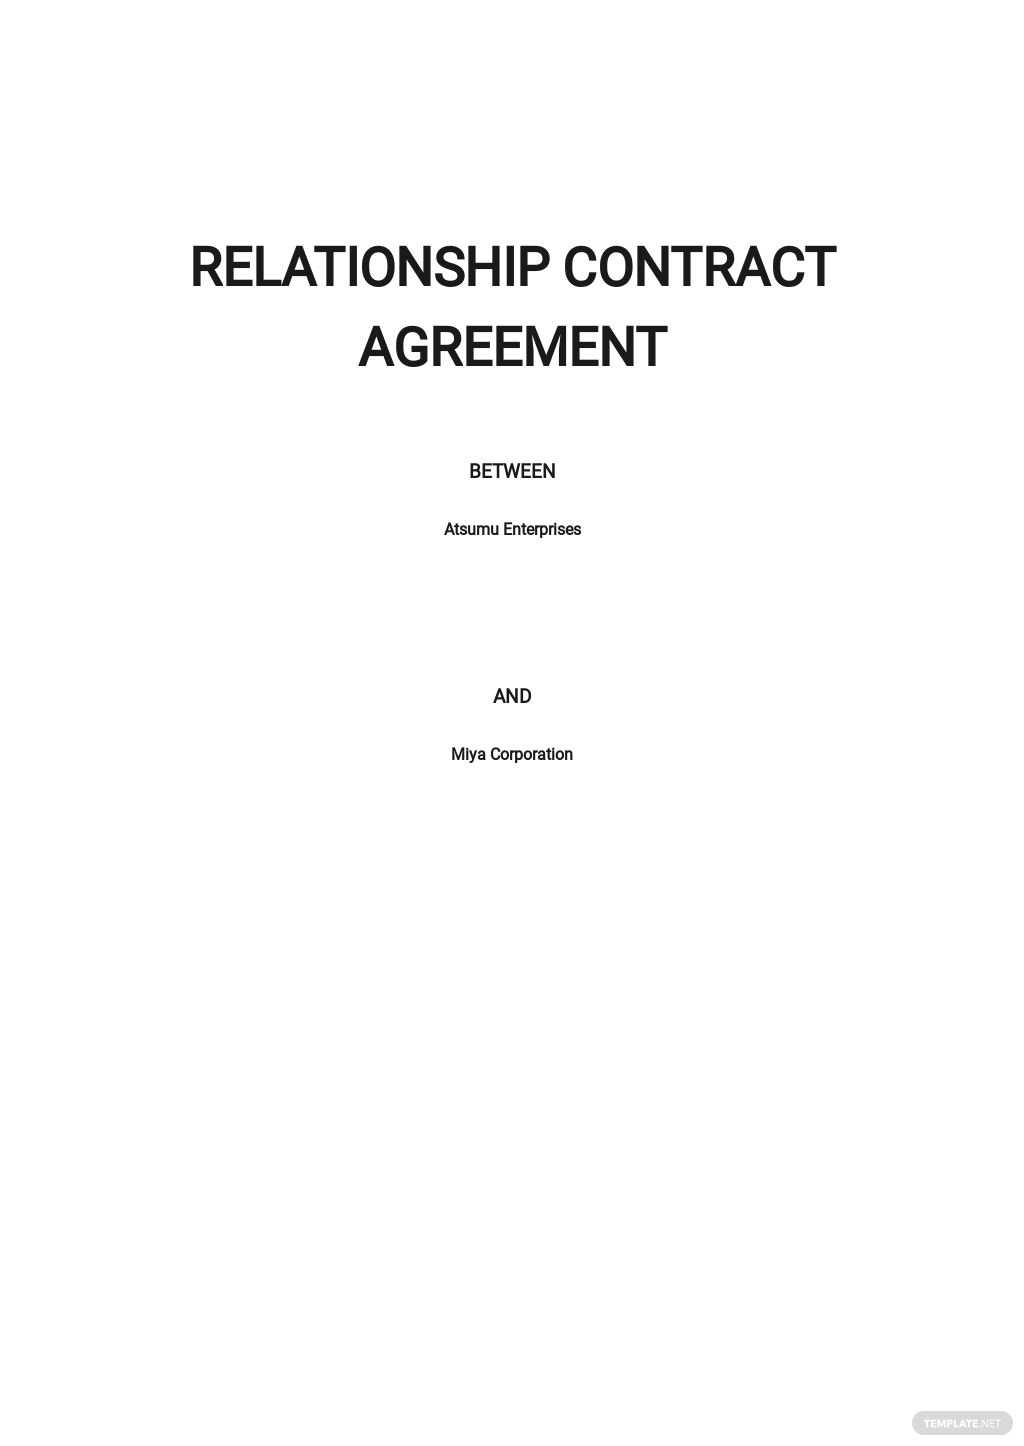 Relationship Contract Agreement Template .jpe